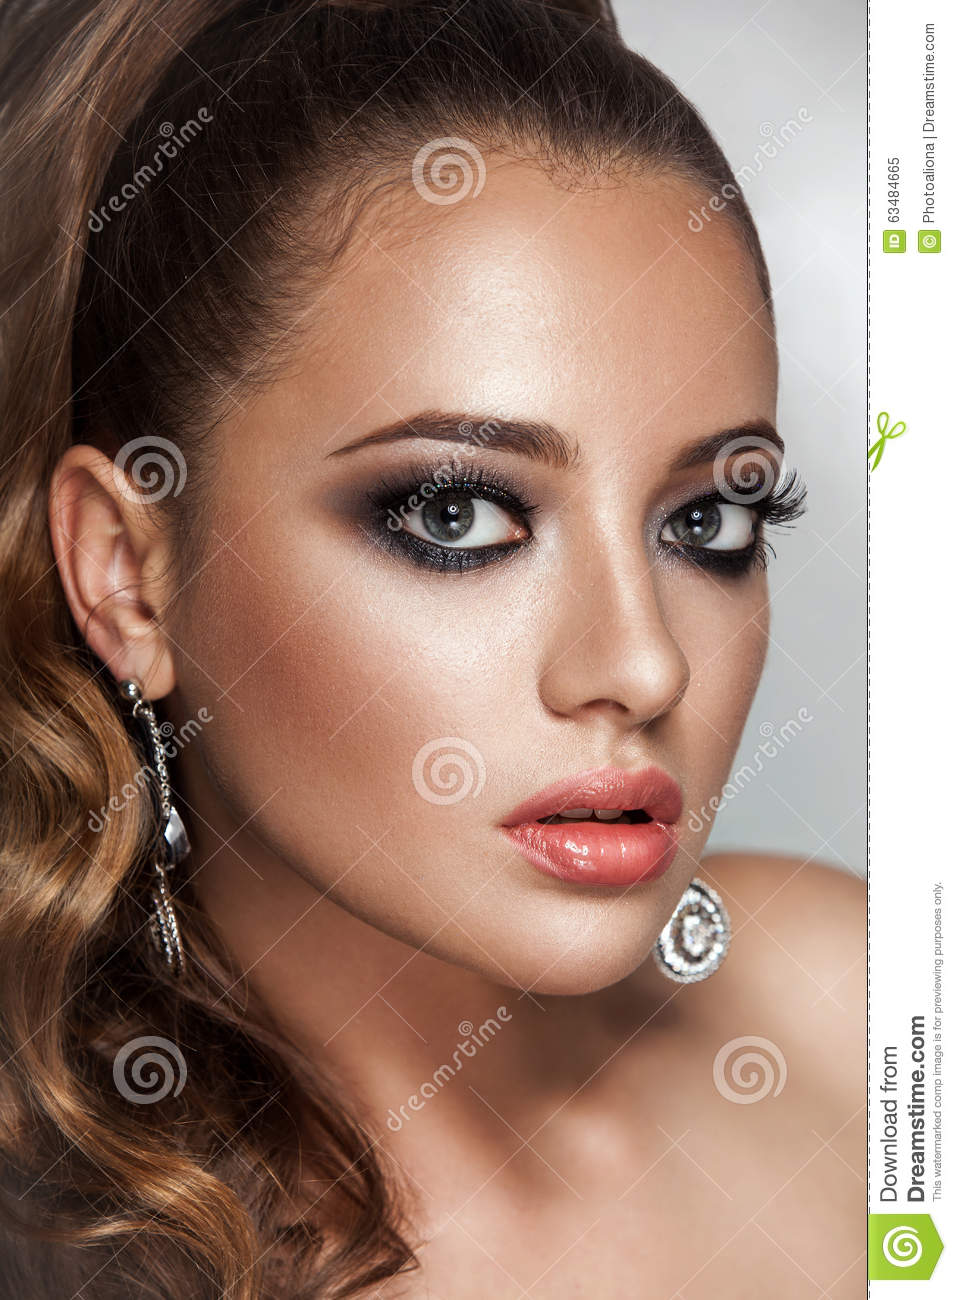 Beauty Brunette Fashion Model Girl With Long Healthy Curly